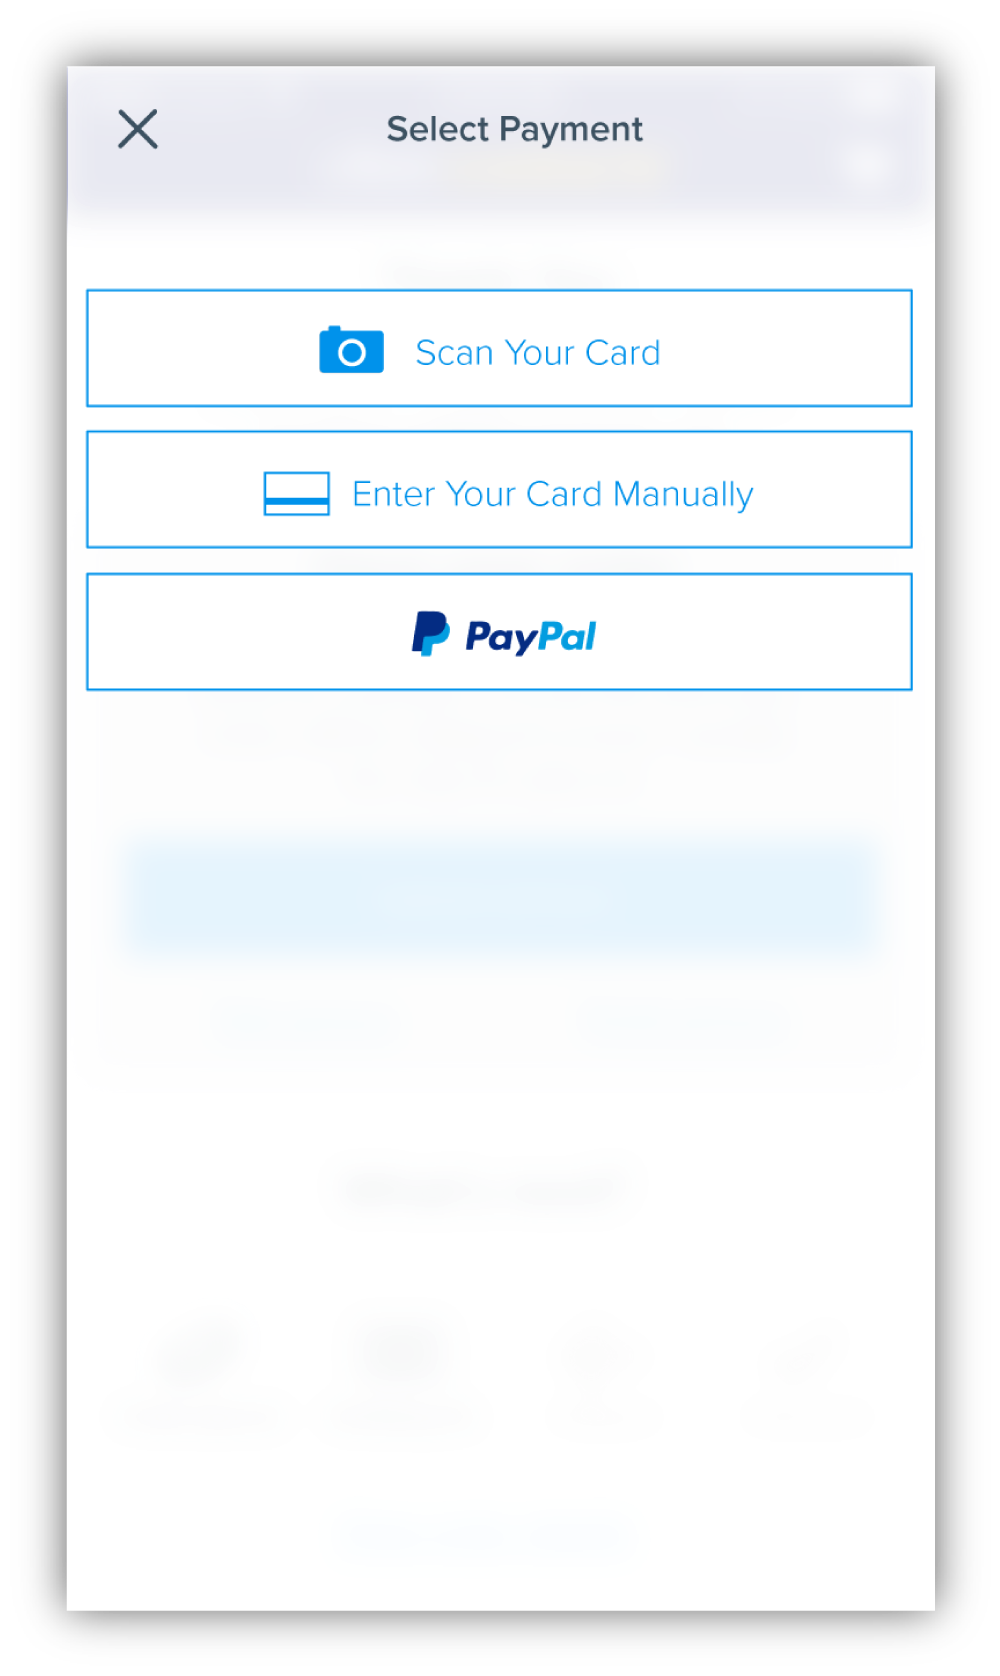 If Apple Pay/Google Wallet wasn't available or used by the user, then other options were provided like scanning your card or paying with Paypal.